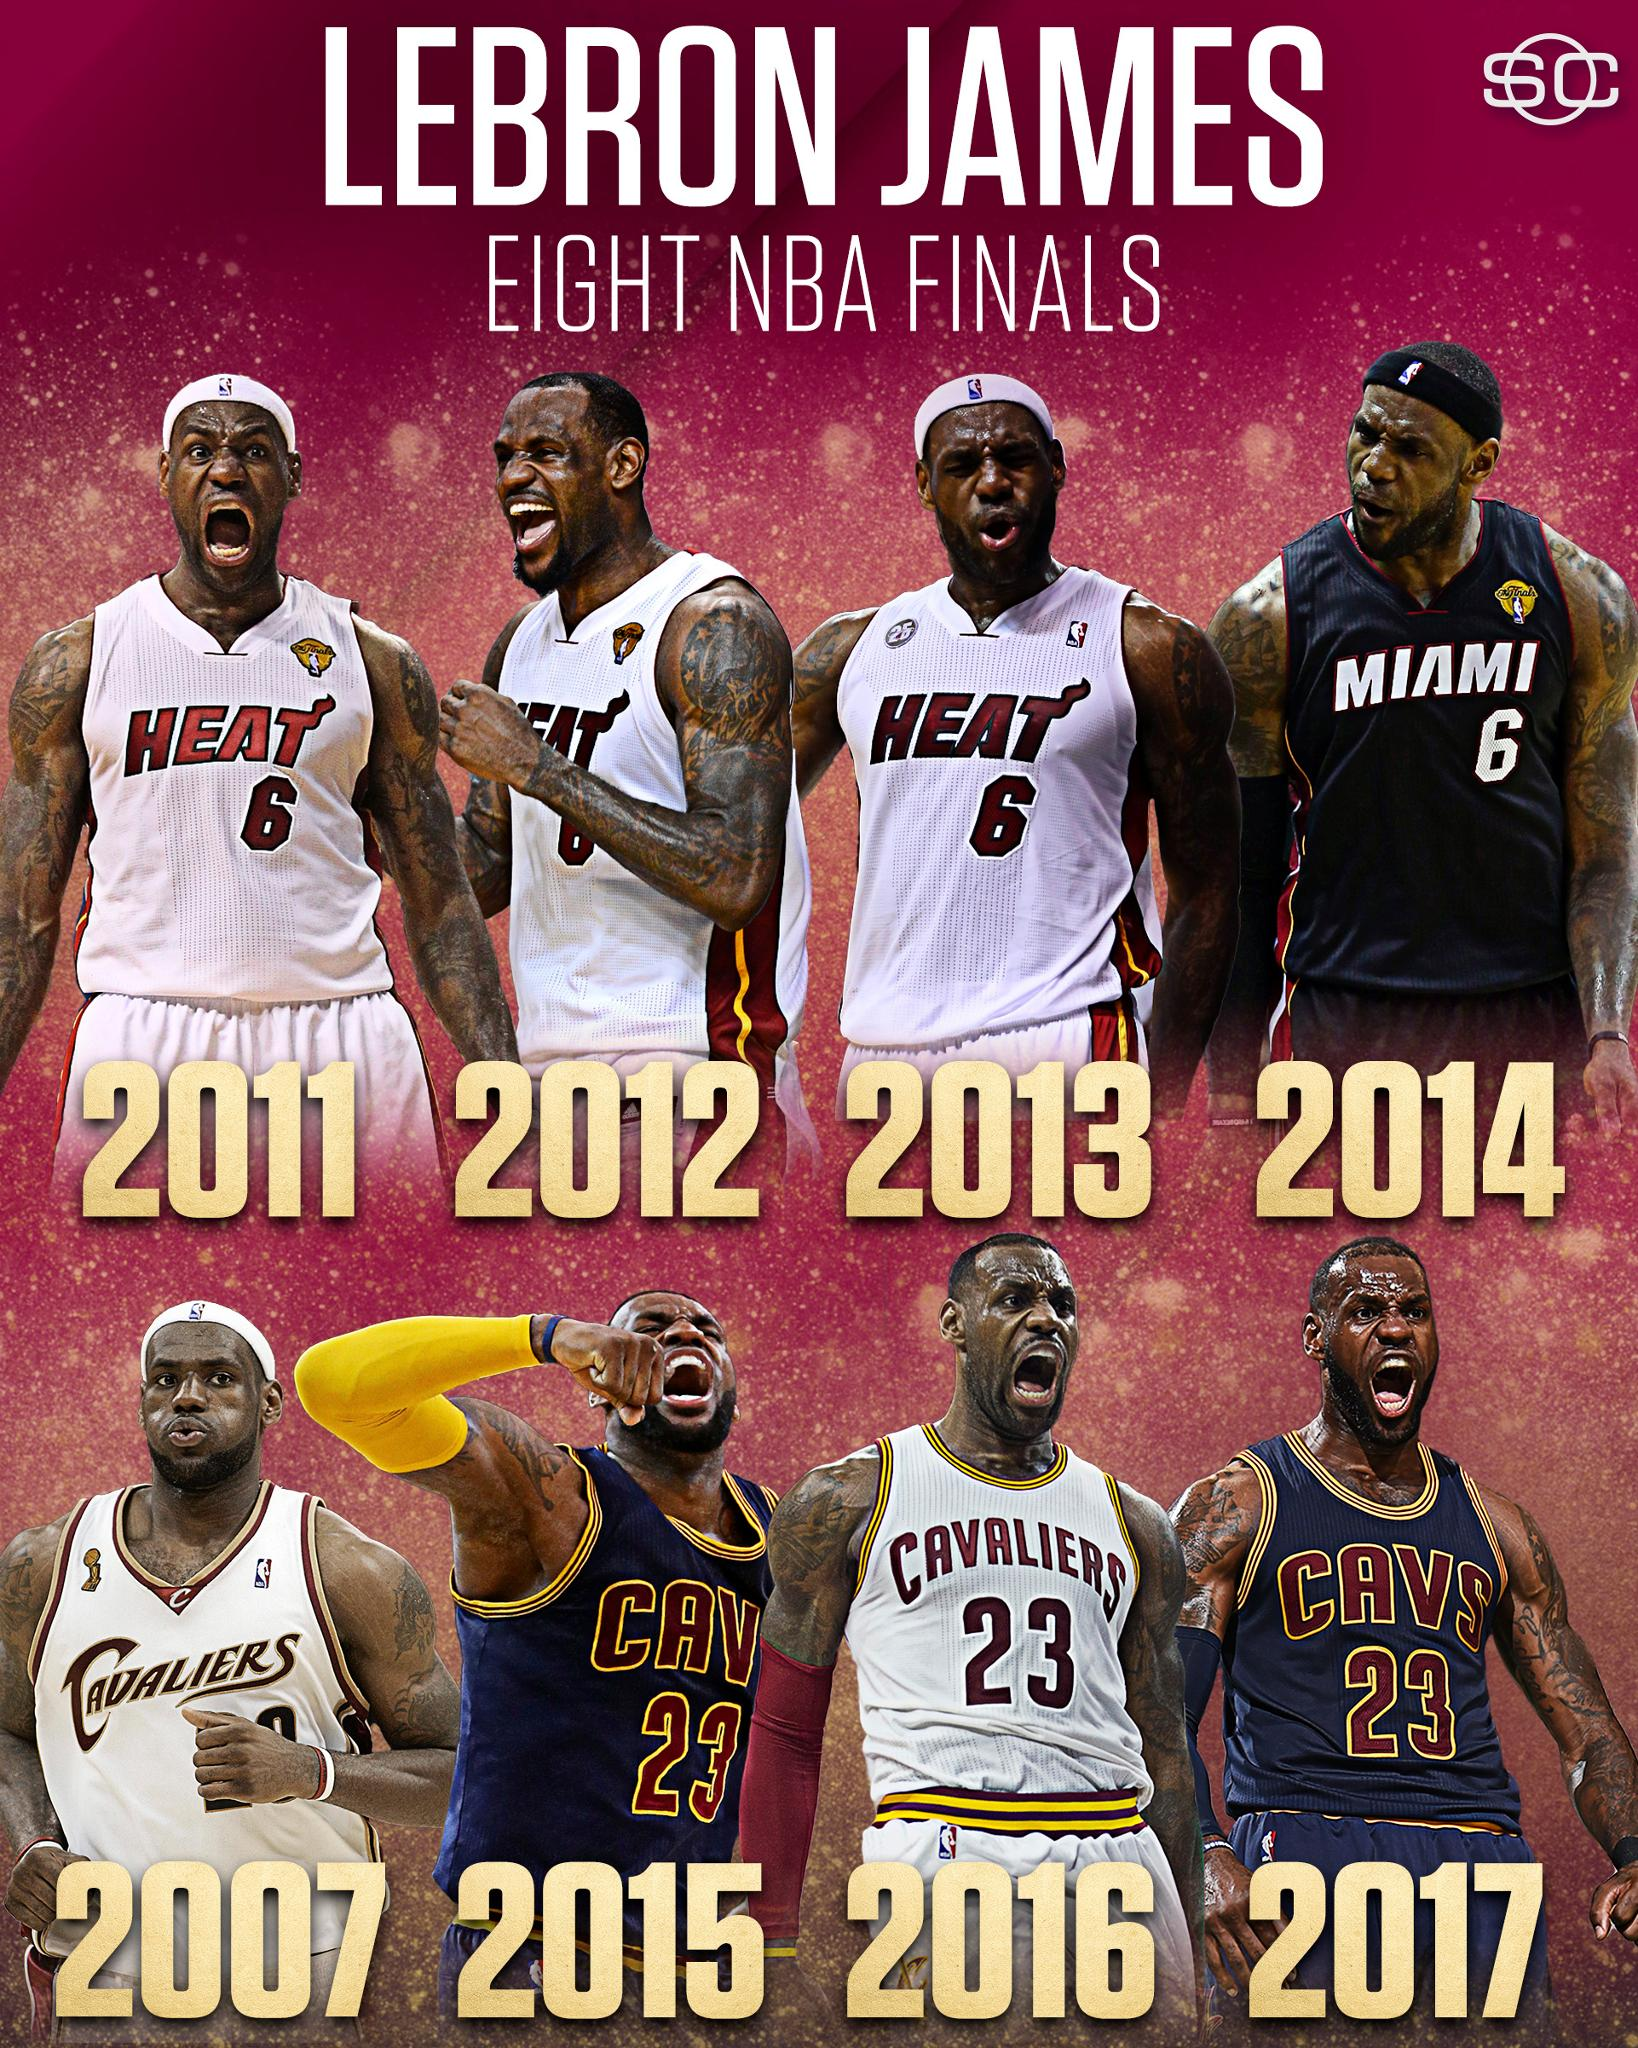 The King becomes the 1st player in NBA history to bring 2 teams to 4 NBA finals. https://t.co/ycefDQZwA2